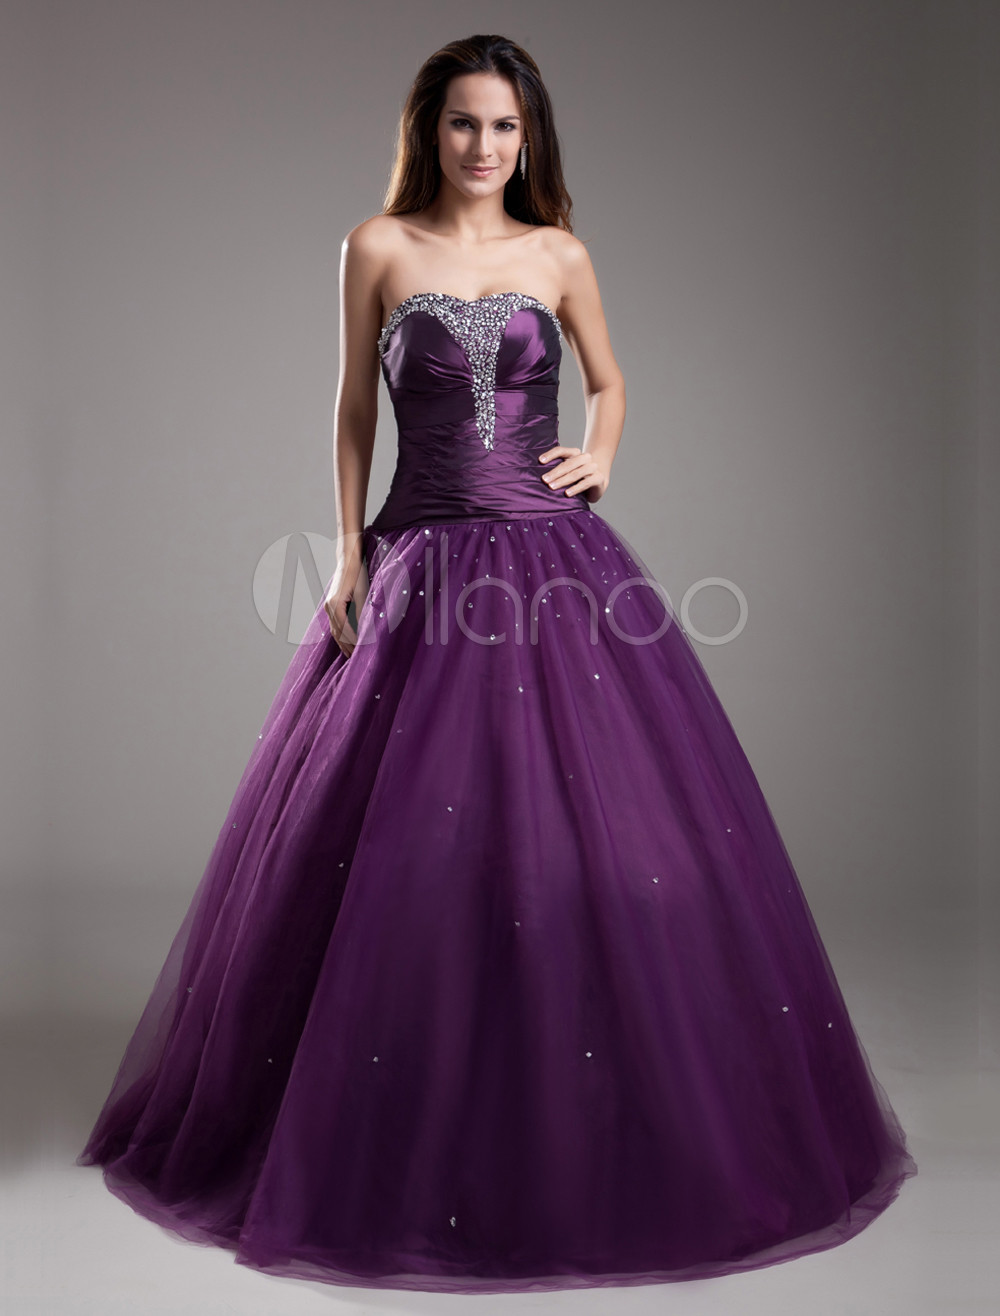 Formal Grape Beading Tulle Sweetheart Neck Ball Gown